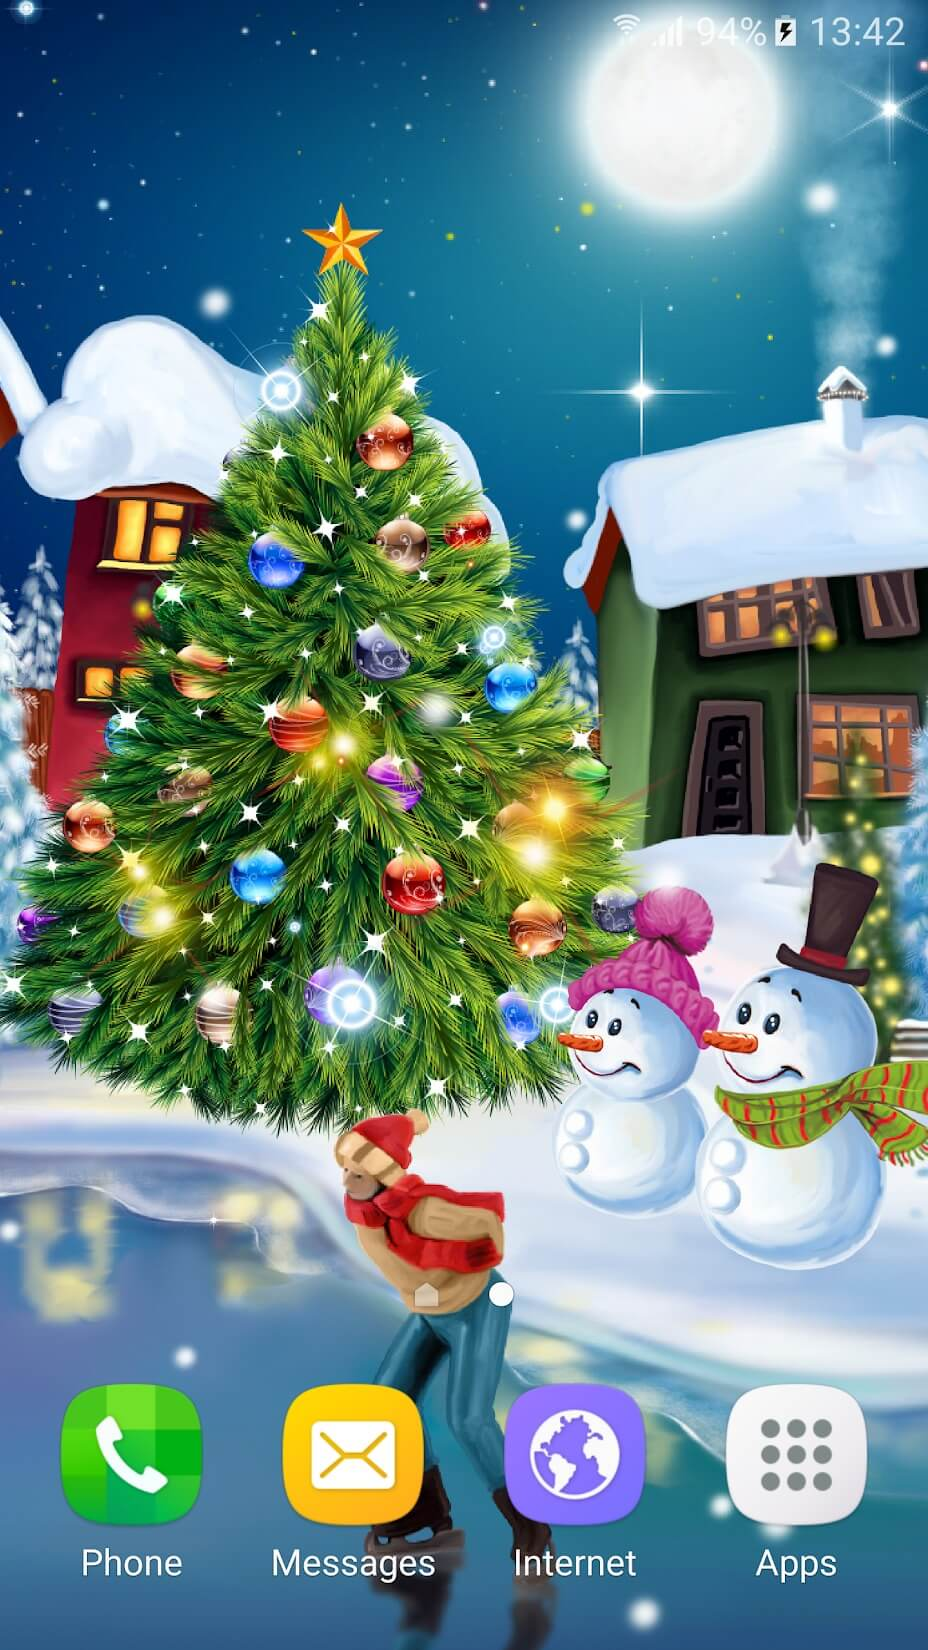 Preview of Christmas Wallpaper